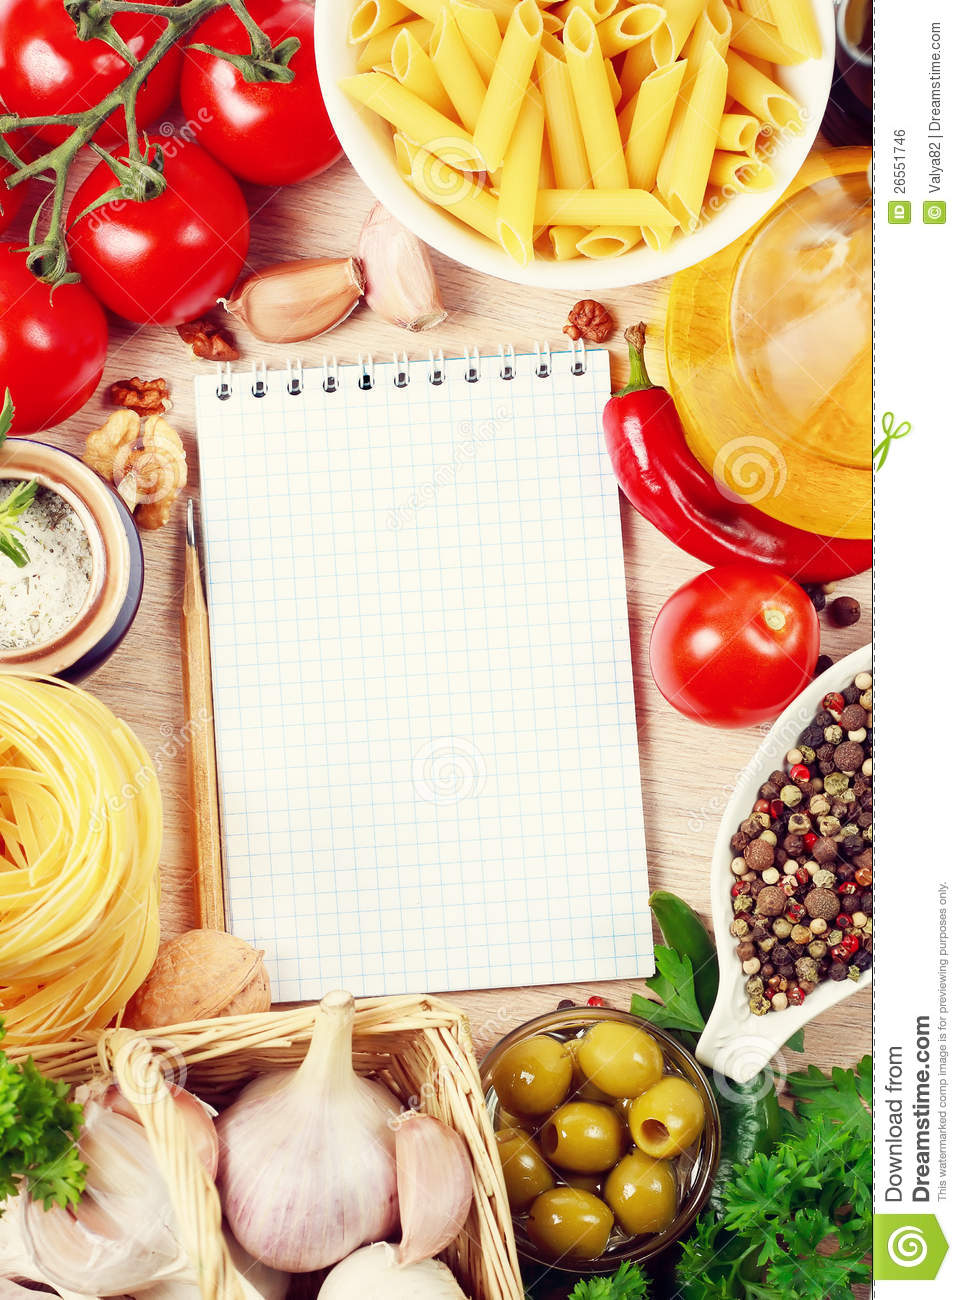 Cookbook Cover Clip Art Download